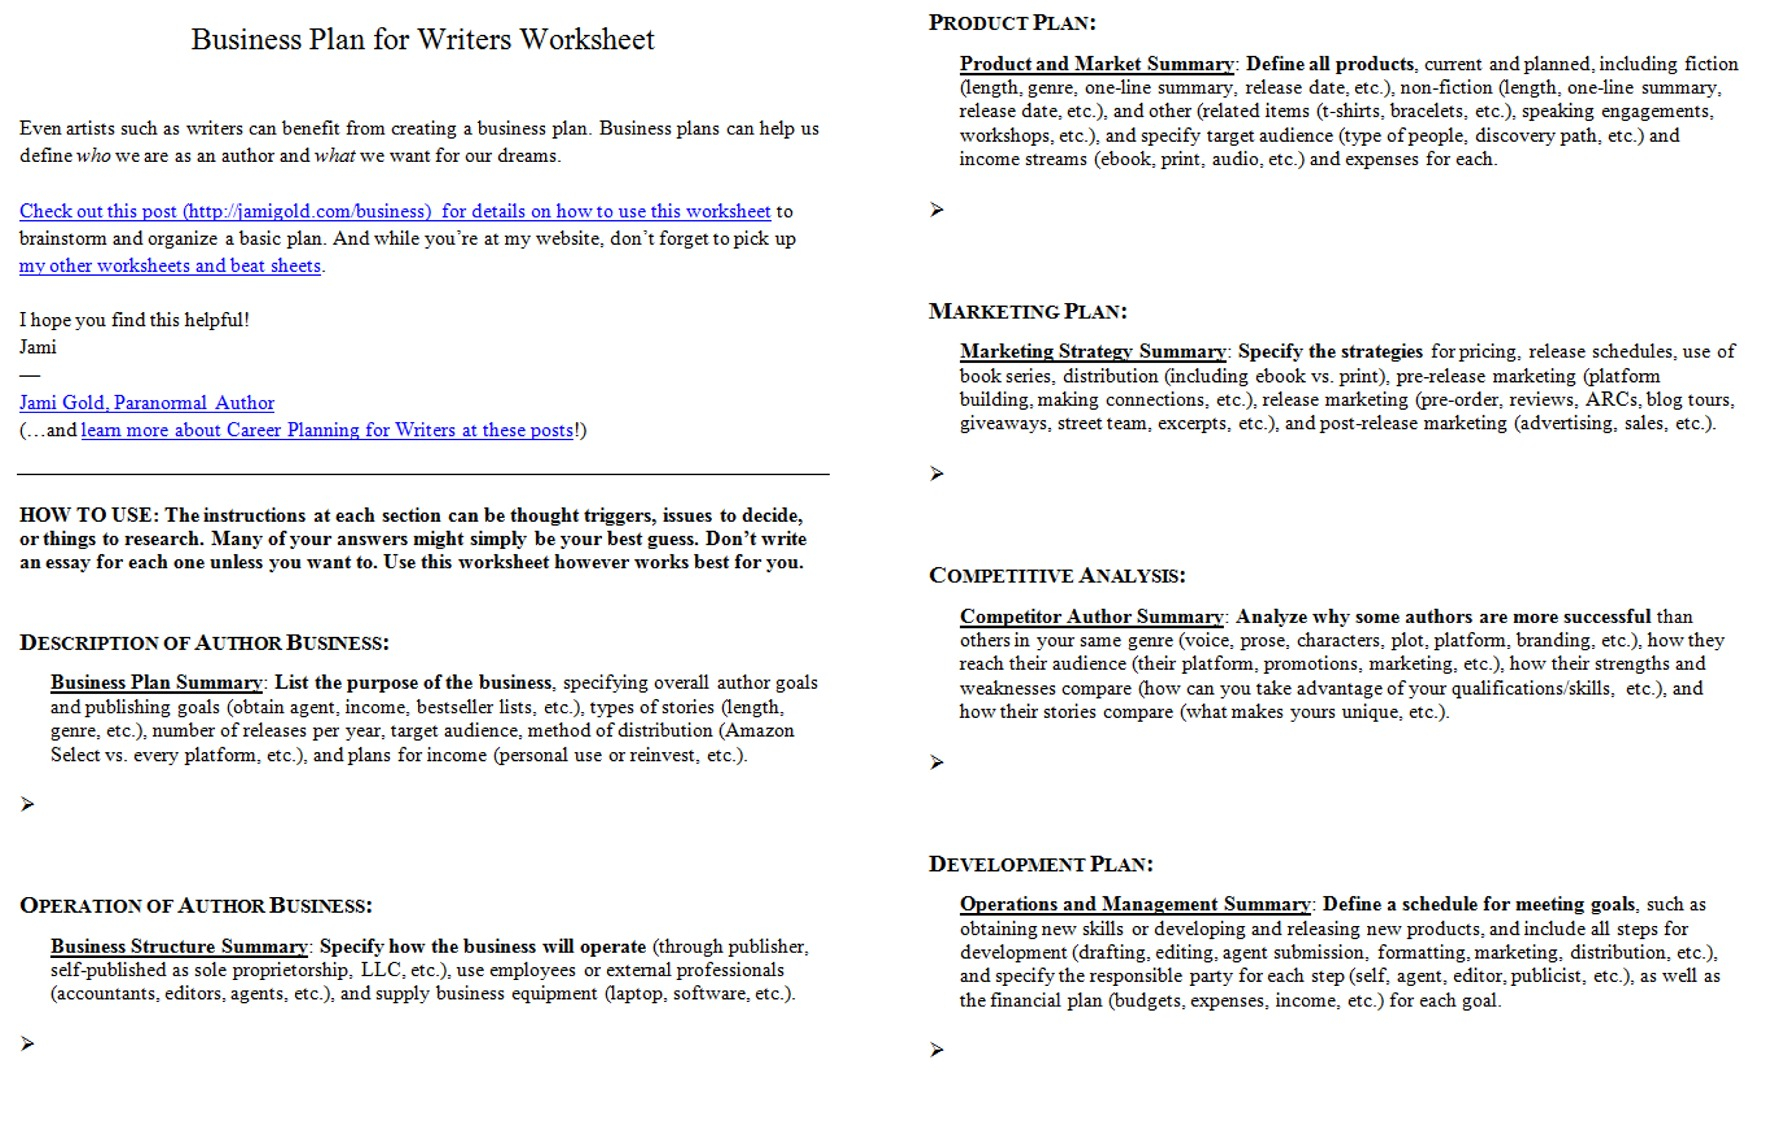 Proatmealus  Pleasing Worksheets For Writers  Jami Gold Paranormal Author With Exciting Screen Shot Of Both Pages Of The Business Plan For Writers Worksheet With Beauteous Kindergarten Homeschool Worksheets Also Imperative Interrogative Declarative And Exclamatory Sentences Worksheets In Addition Solving Equations And Inequalities Worksheets And Math Worksheet Builder As Well As Goal Setting For Athletes Worksheet Additionally Math Tens And Ones Worksheets First Grade From Jamigoldcom With Proatmealus  Exciting Worksheets For Writers  Jami Gold Paranormal Author With Beauteous Screen Shot Of Both Pages Of The Business Plan For Writers Worksheet And Pleasing Kindergarten Homeschool Worksheets Also Imperative Interrogative Declarative And Exclamatory Sentences Worksheets In Addition Solving Equations And Inequalities Worksheets From Jamigoldcom